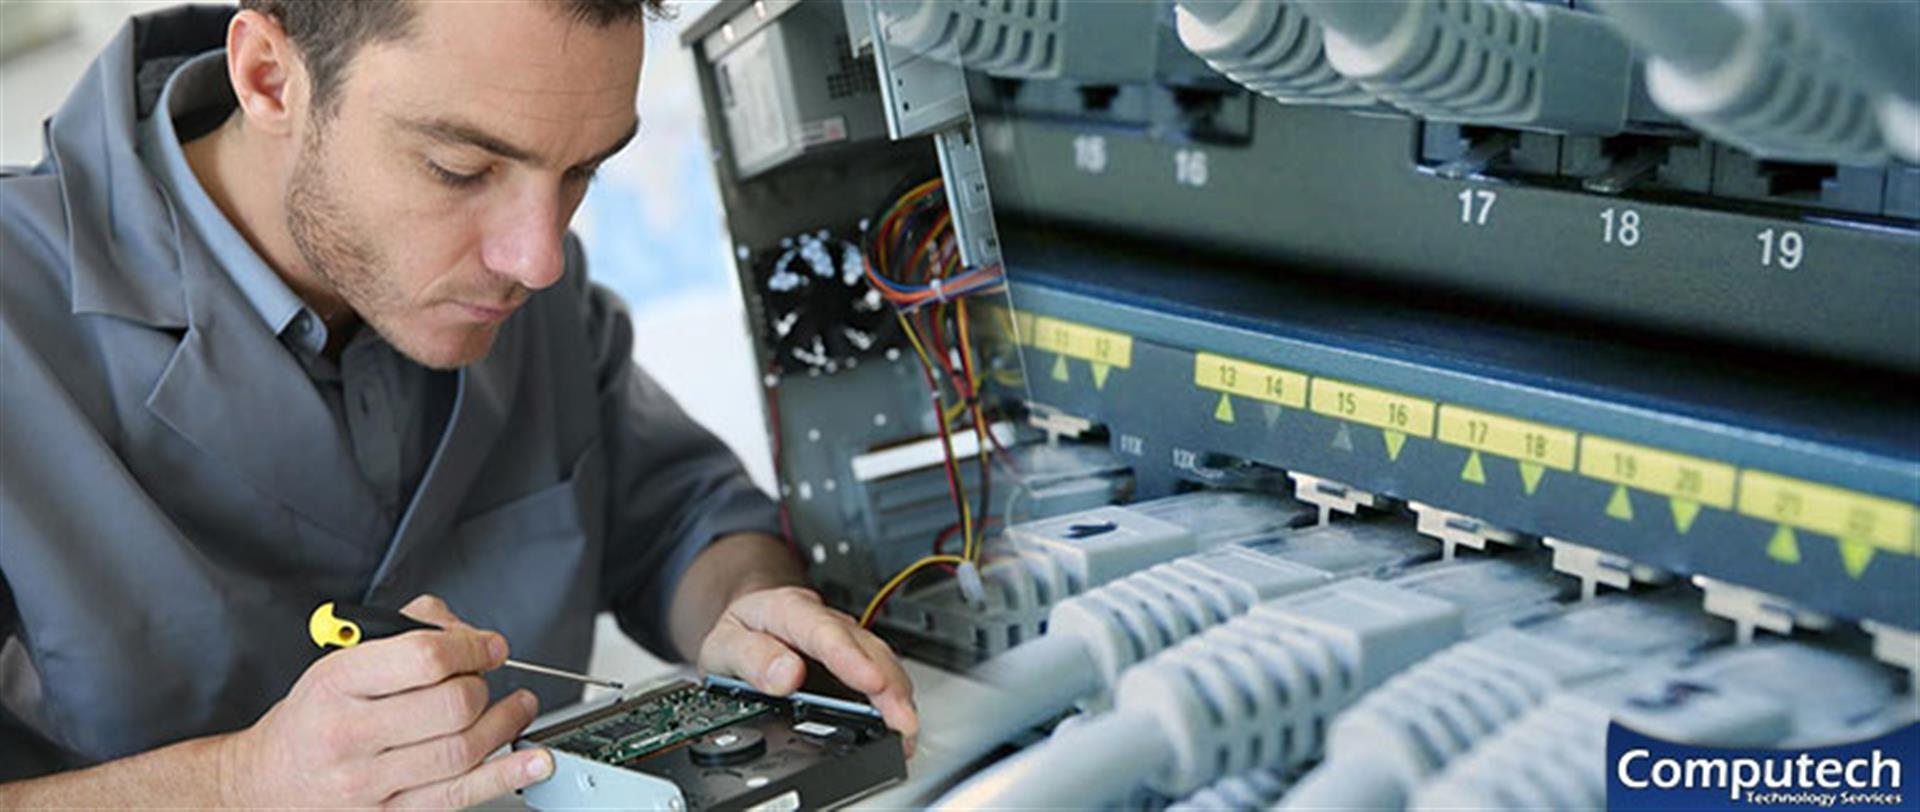 Williamsburg Virginia On Site PC & Printer Repairs, Networking, Voice & Data Cabling Services